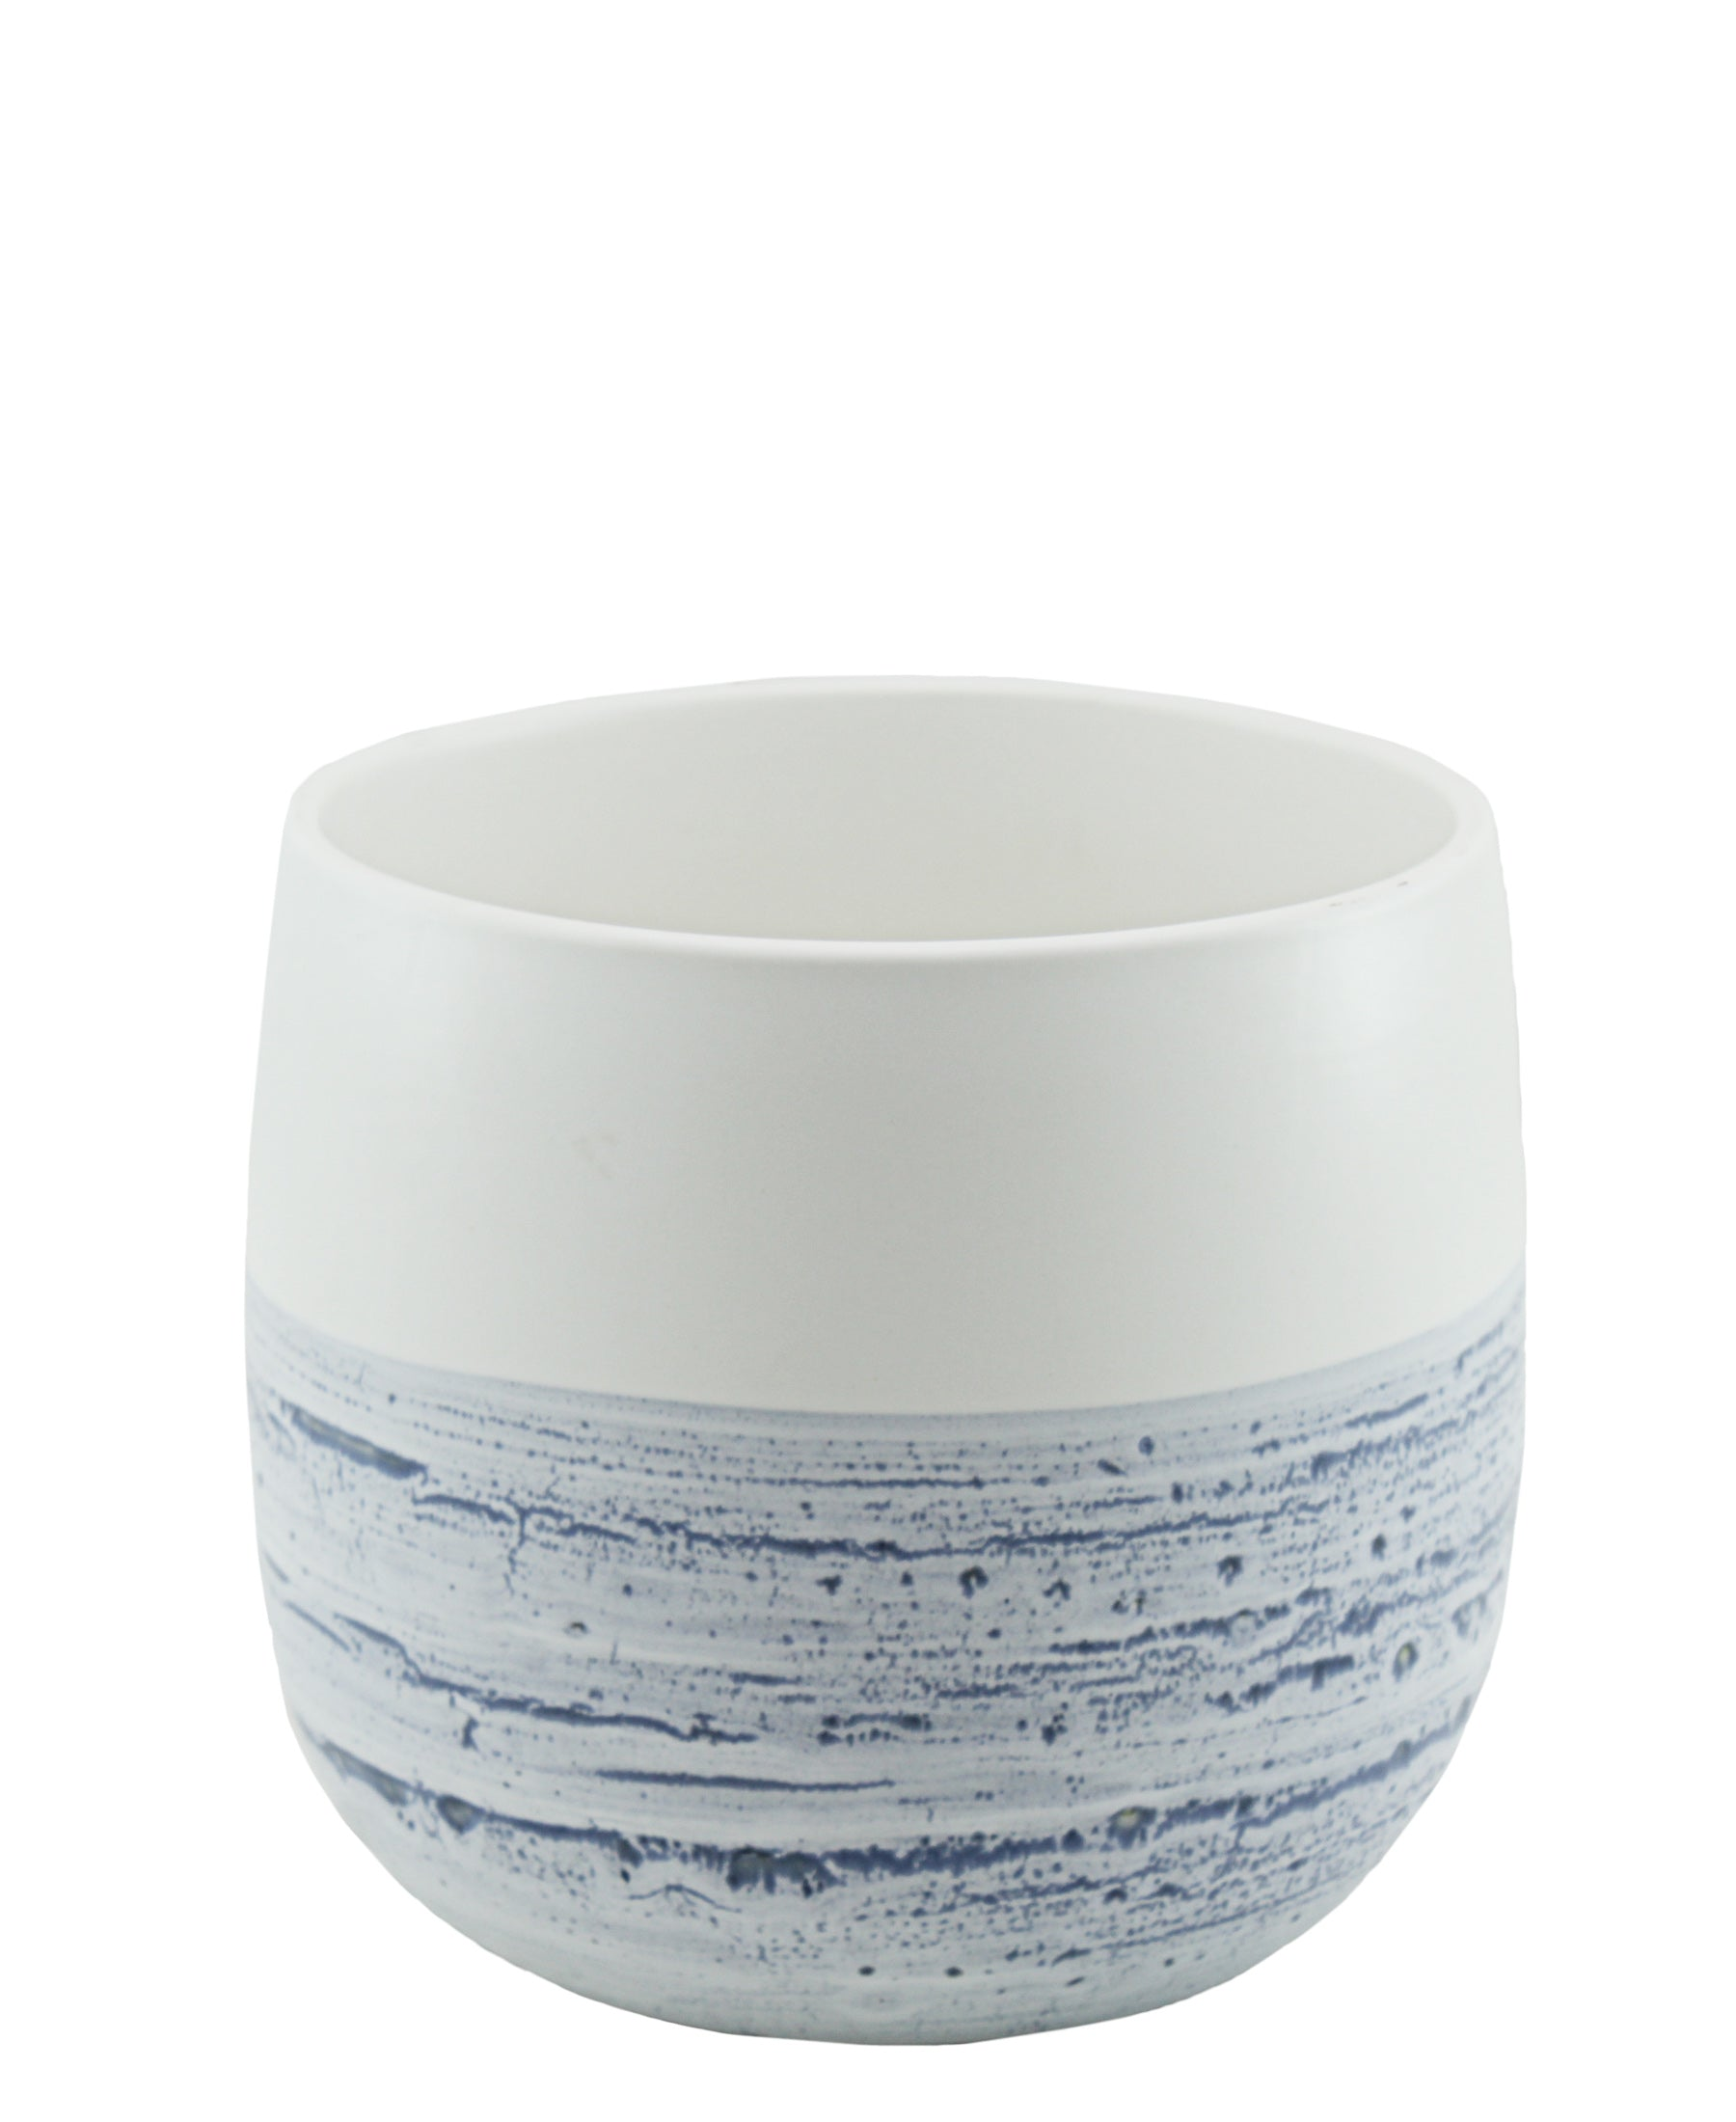 Ciroa Skyline Utensil Crock - Blue